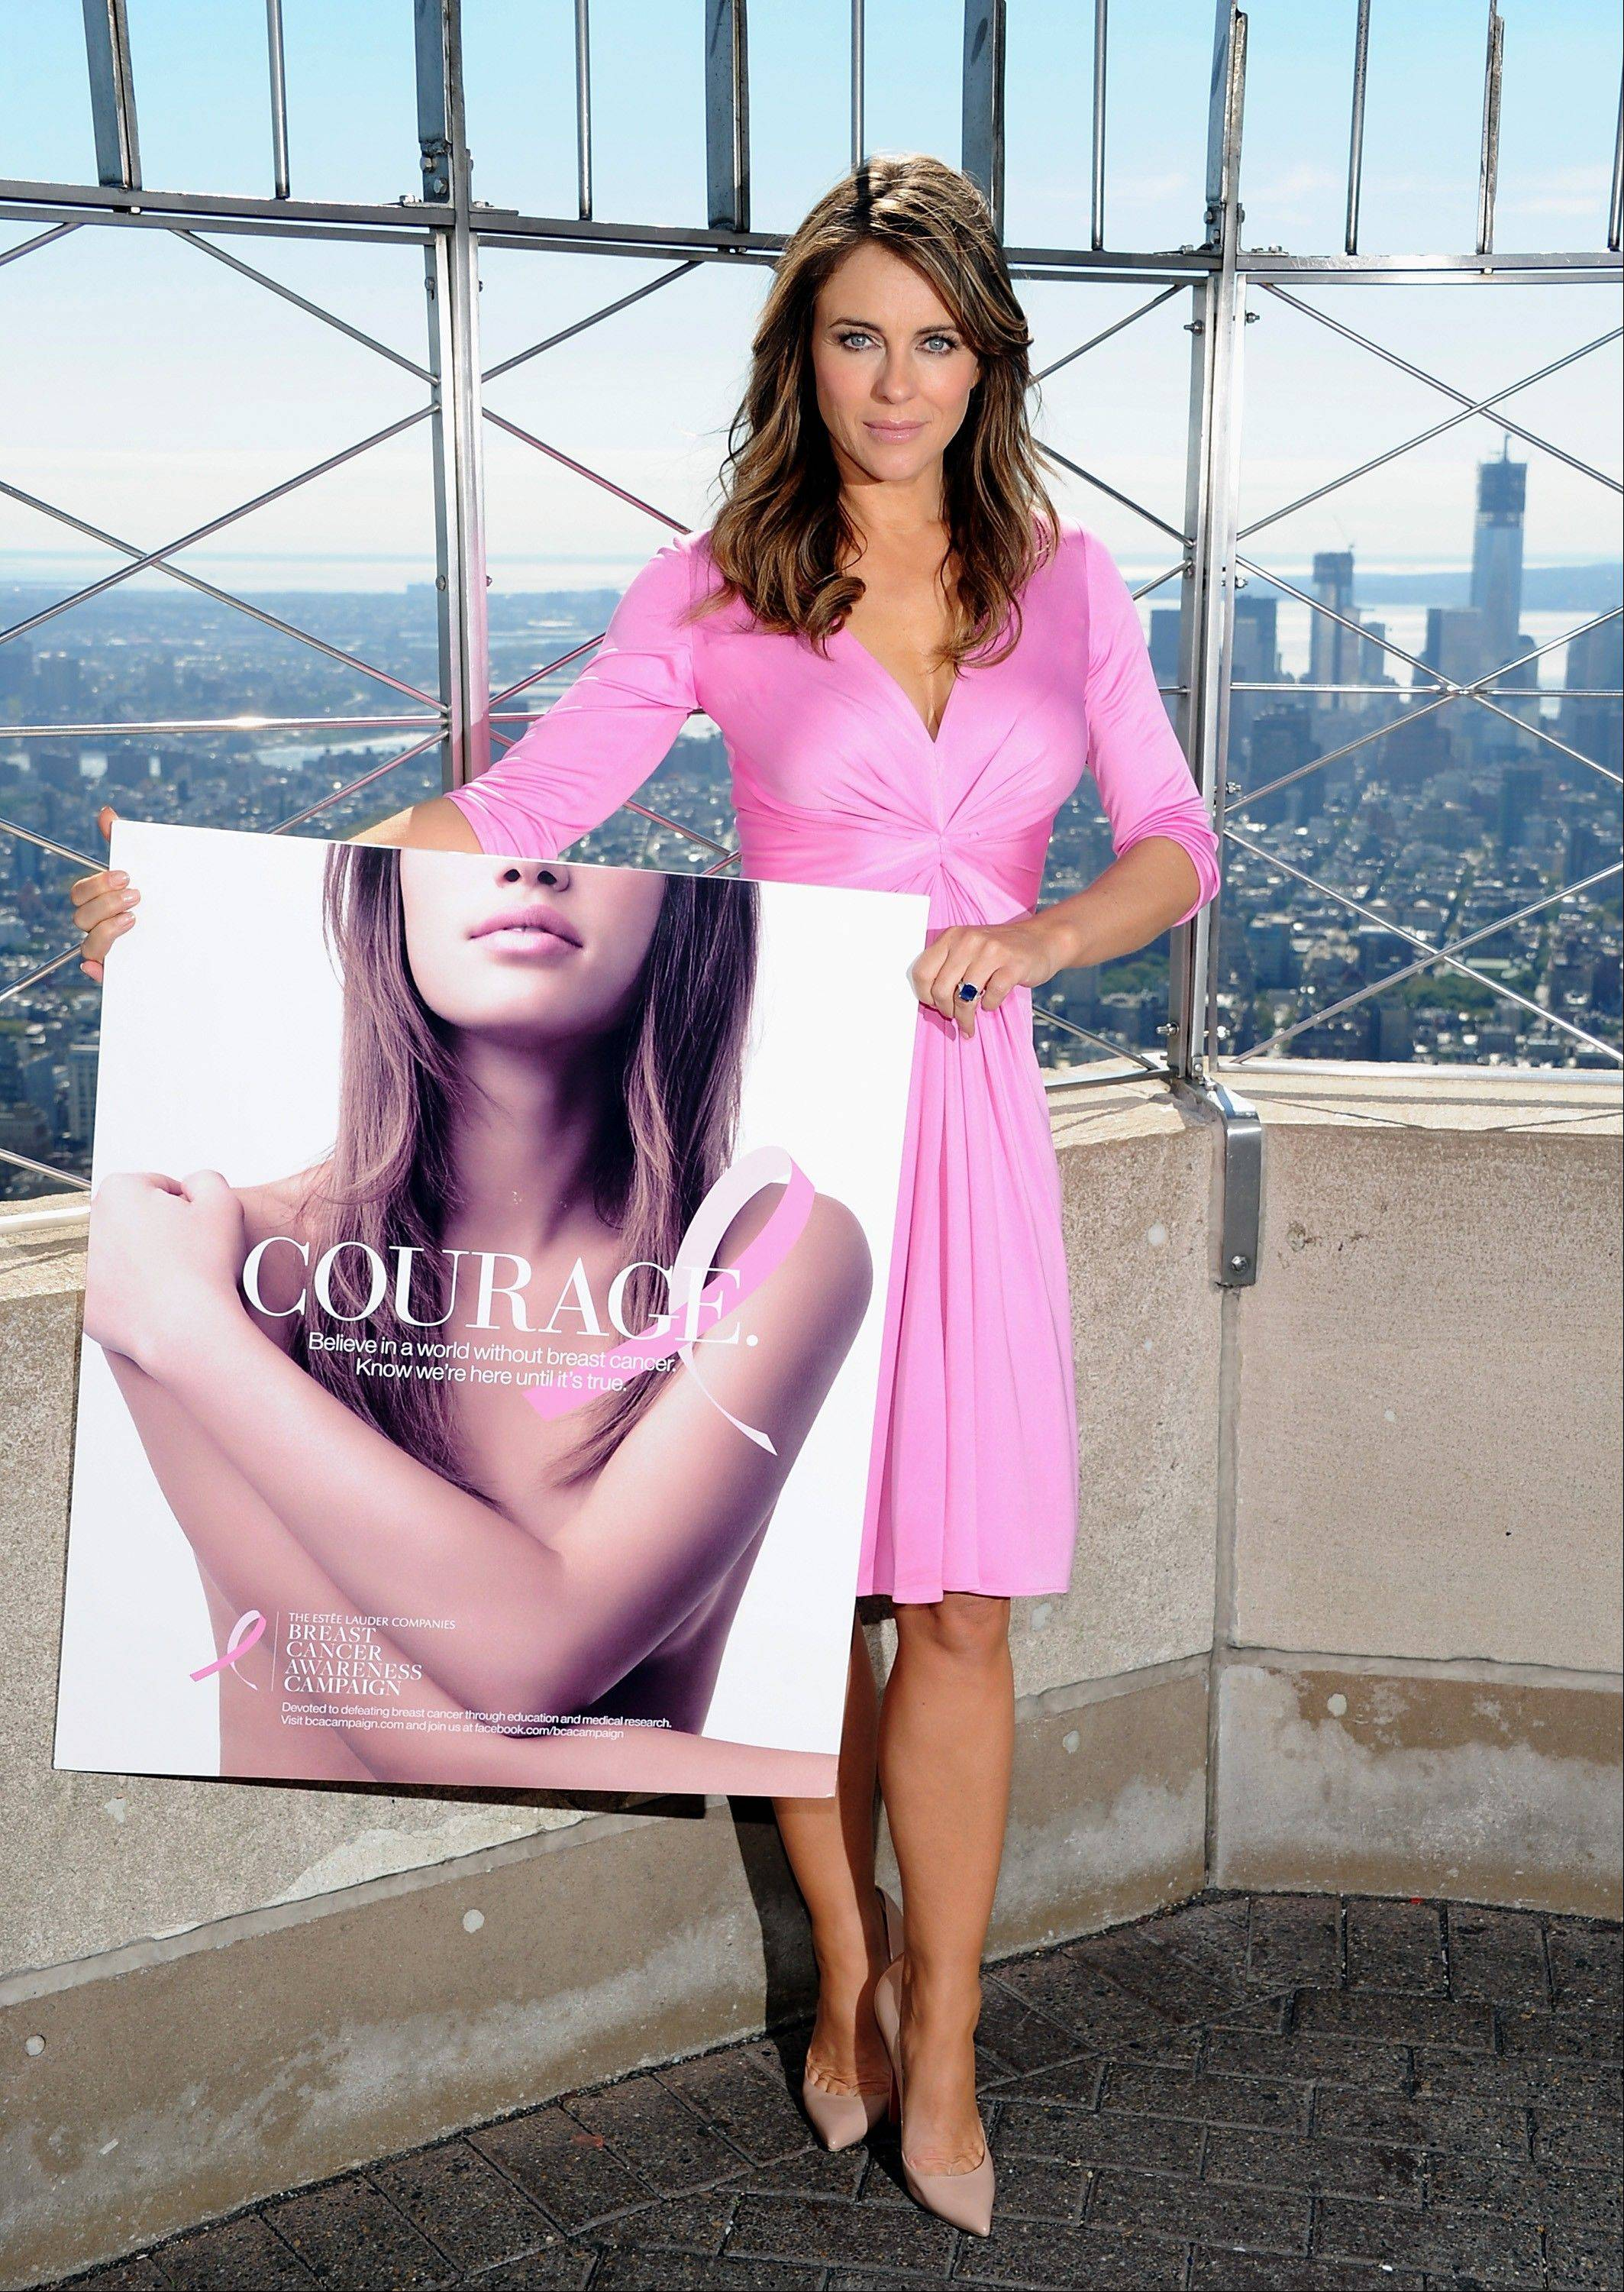 Spokesperson and model Elizabeth Hurley poses on the observation deck after lighting the Empire State Building pink in honor of the 20th Anniversary of the Estee Lauder Companies� Breast Cancer Awareness Campaign on Monday, Oct. 1, 2012 in New York.